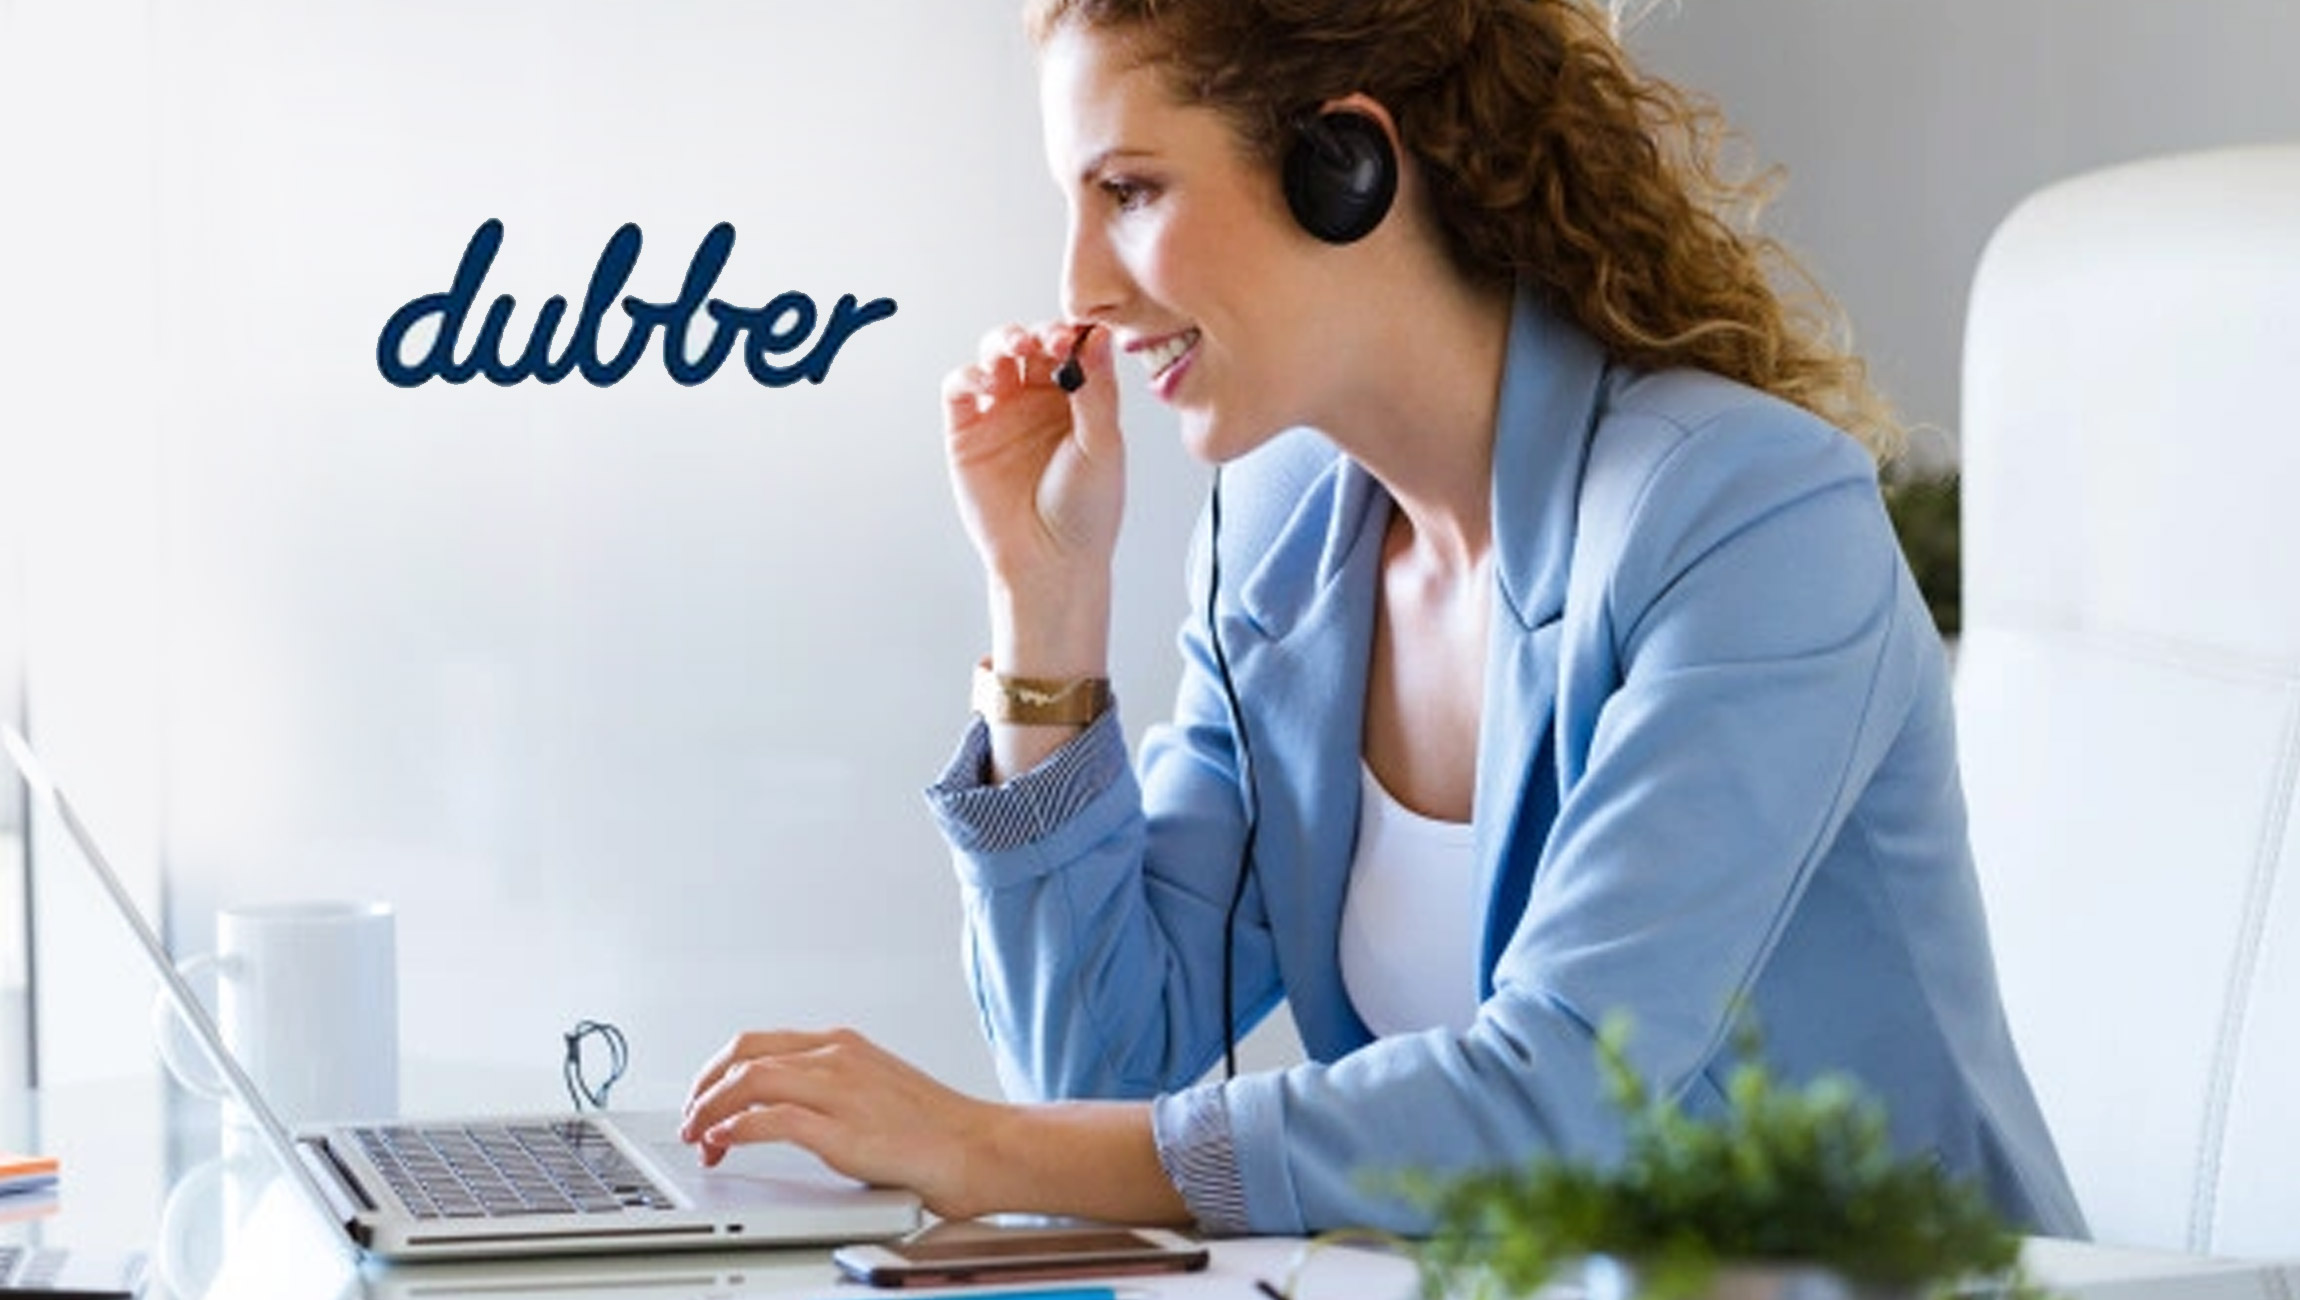 Dubber Announces Unified Call Recording And Voice AI With Zoom